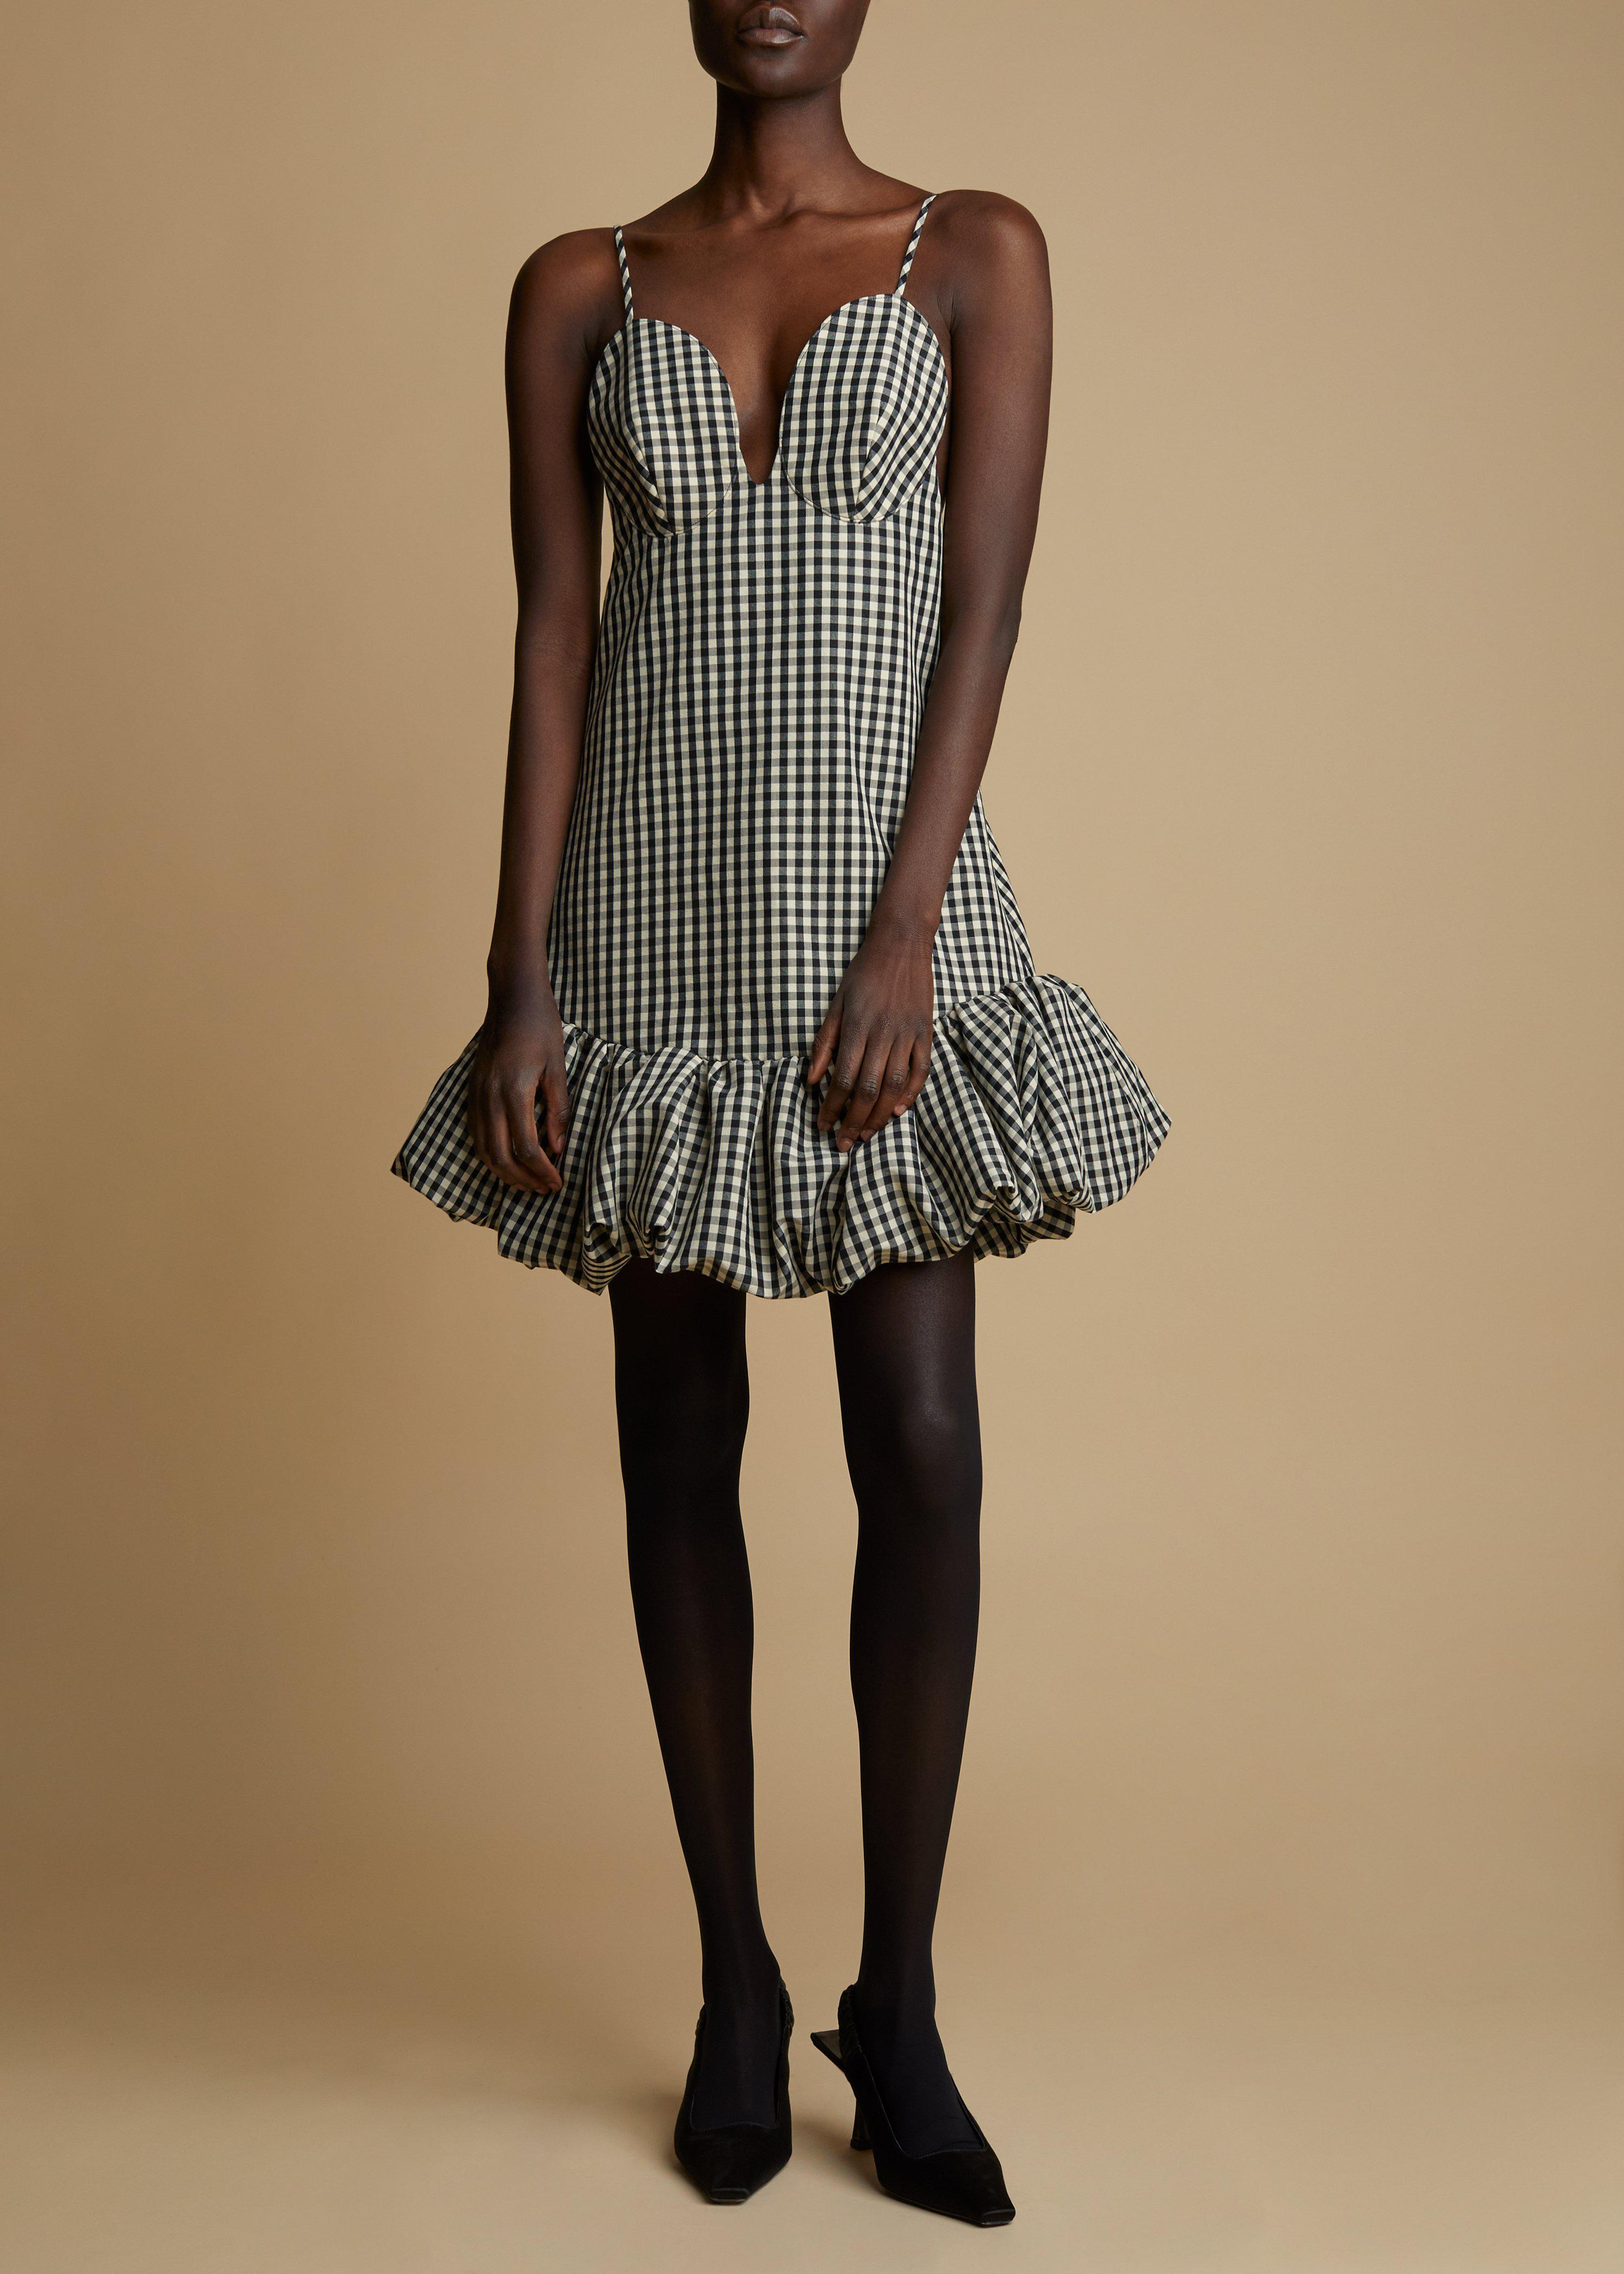 The Sienna Dress in Black and White Gingham